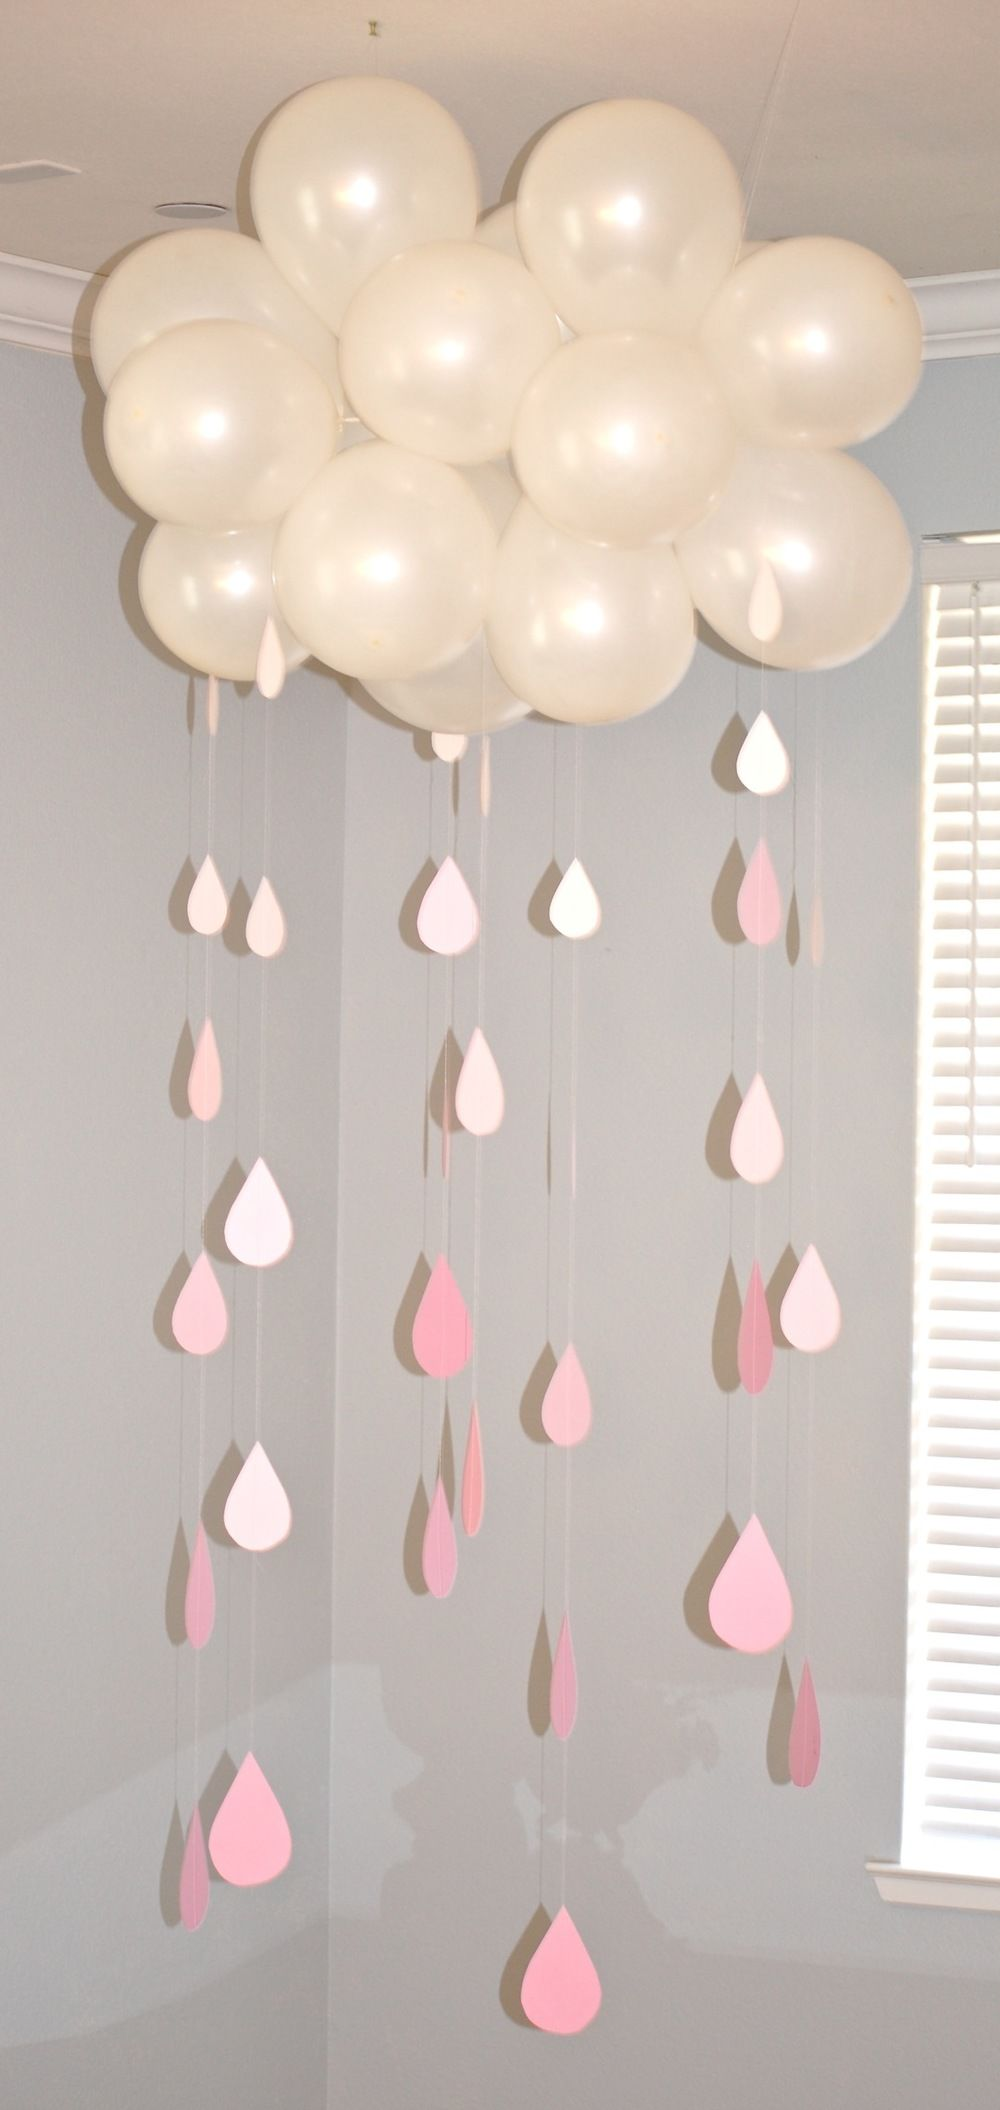 Cloud and raindrop baby shower decoration pictures photos and images for fa - Decoration baby shower ...